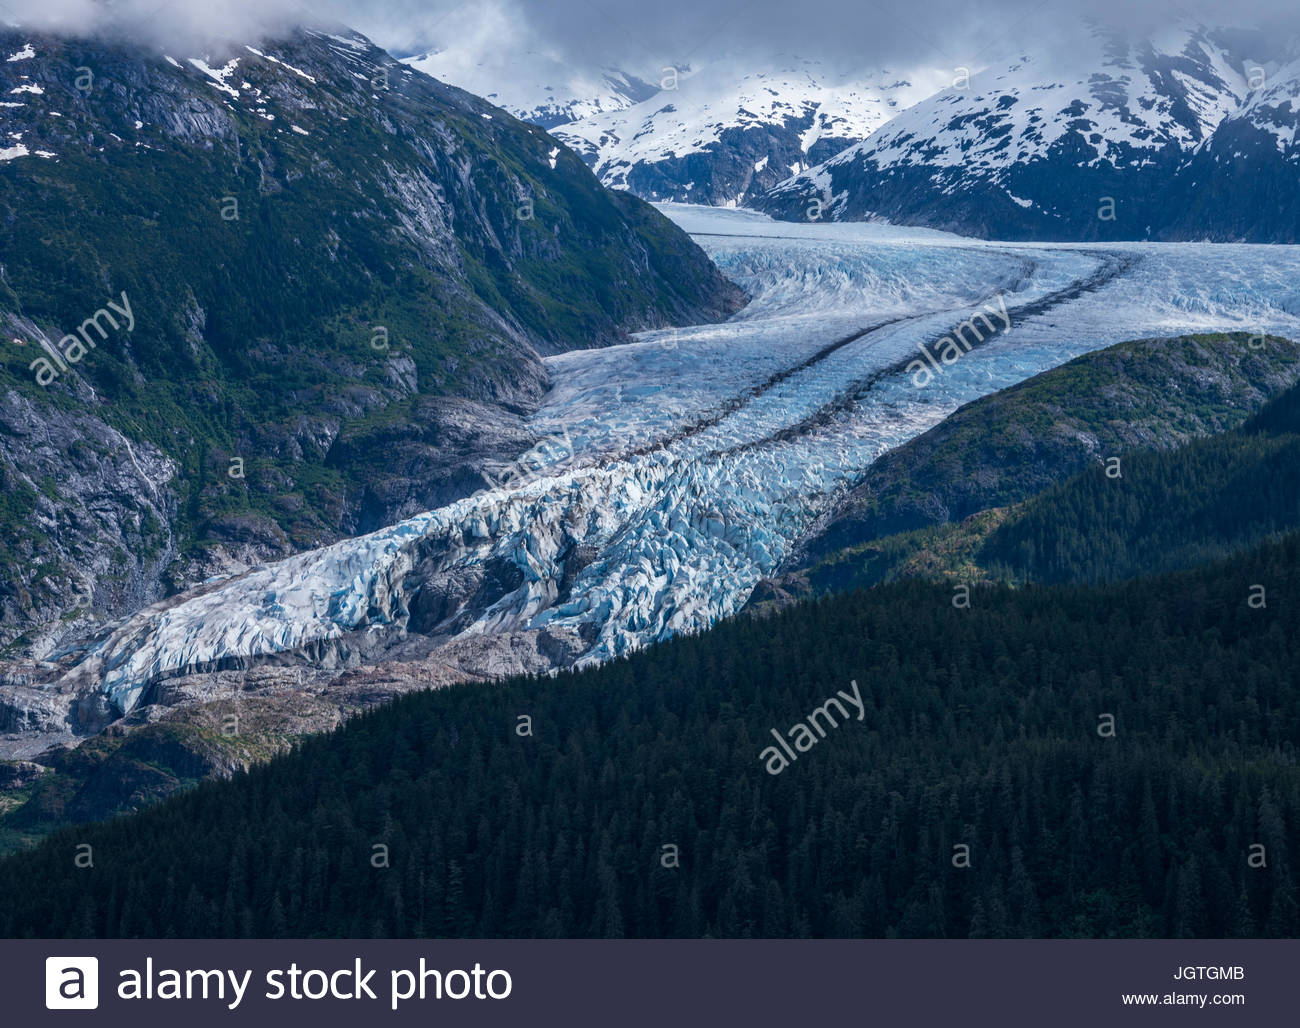 Aerial view of Juneau's Mendenhall Glacier. - Stock Image